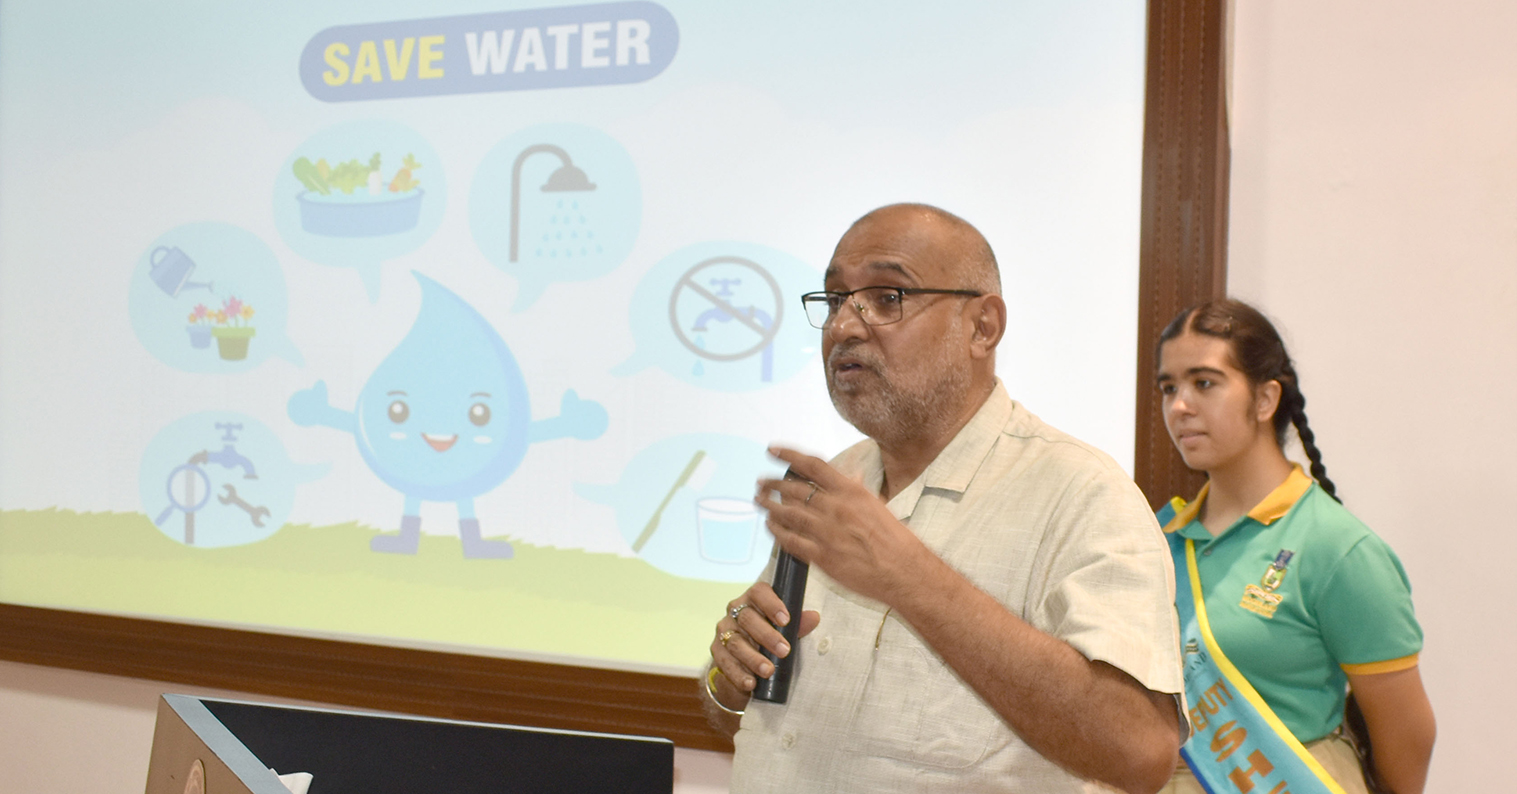 BRAIN STORMING SESSION ON SAVE WATER